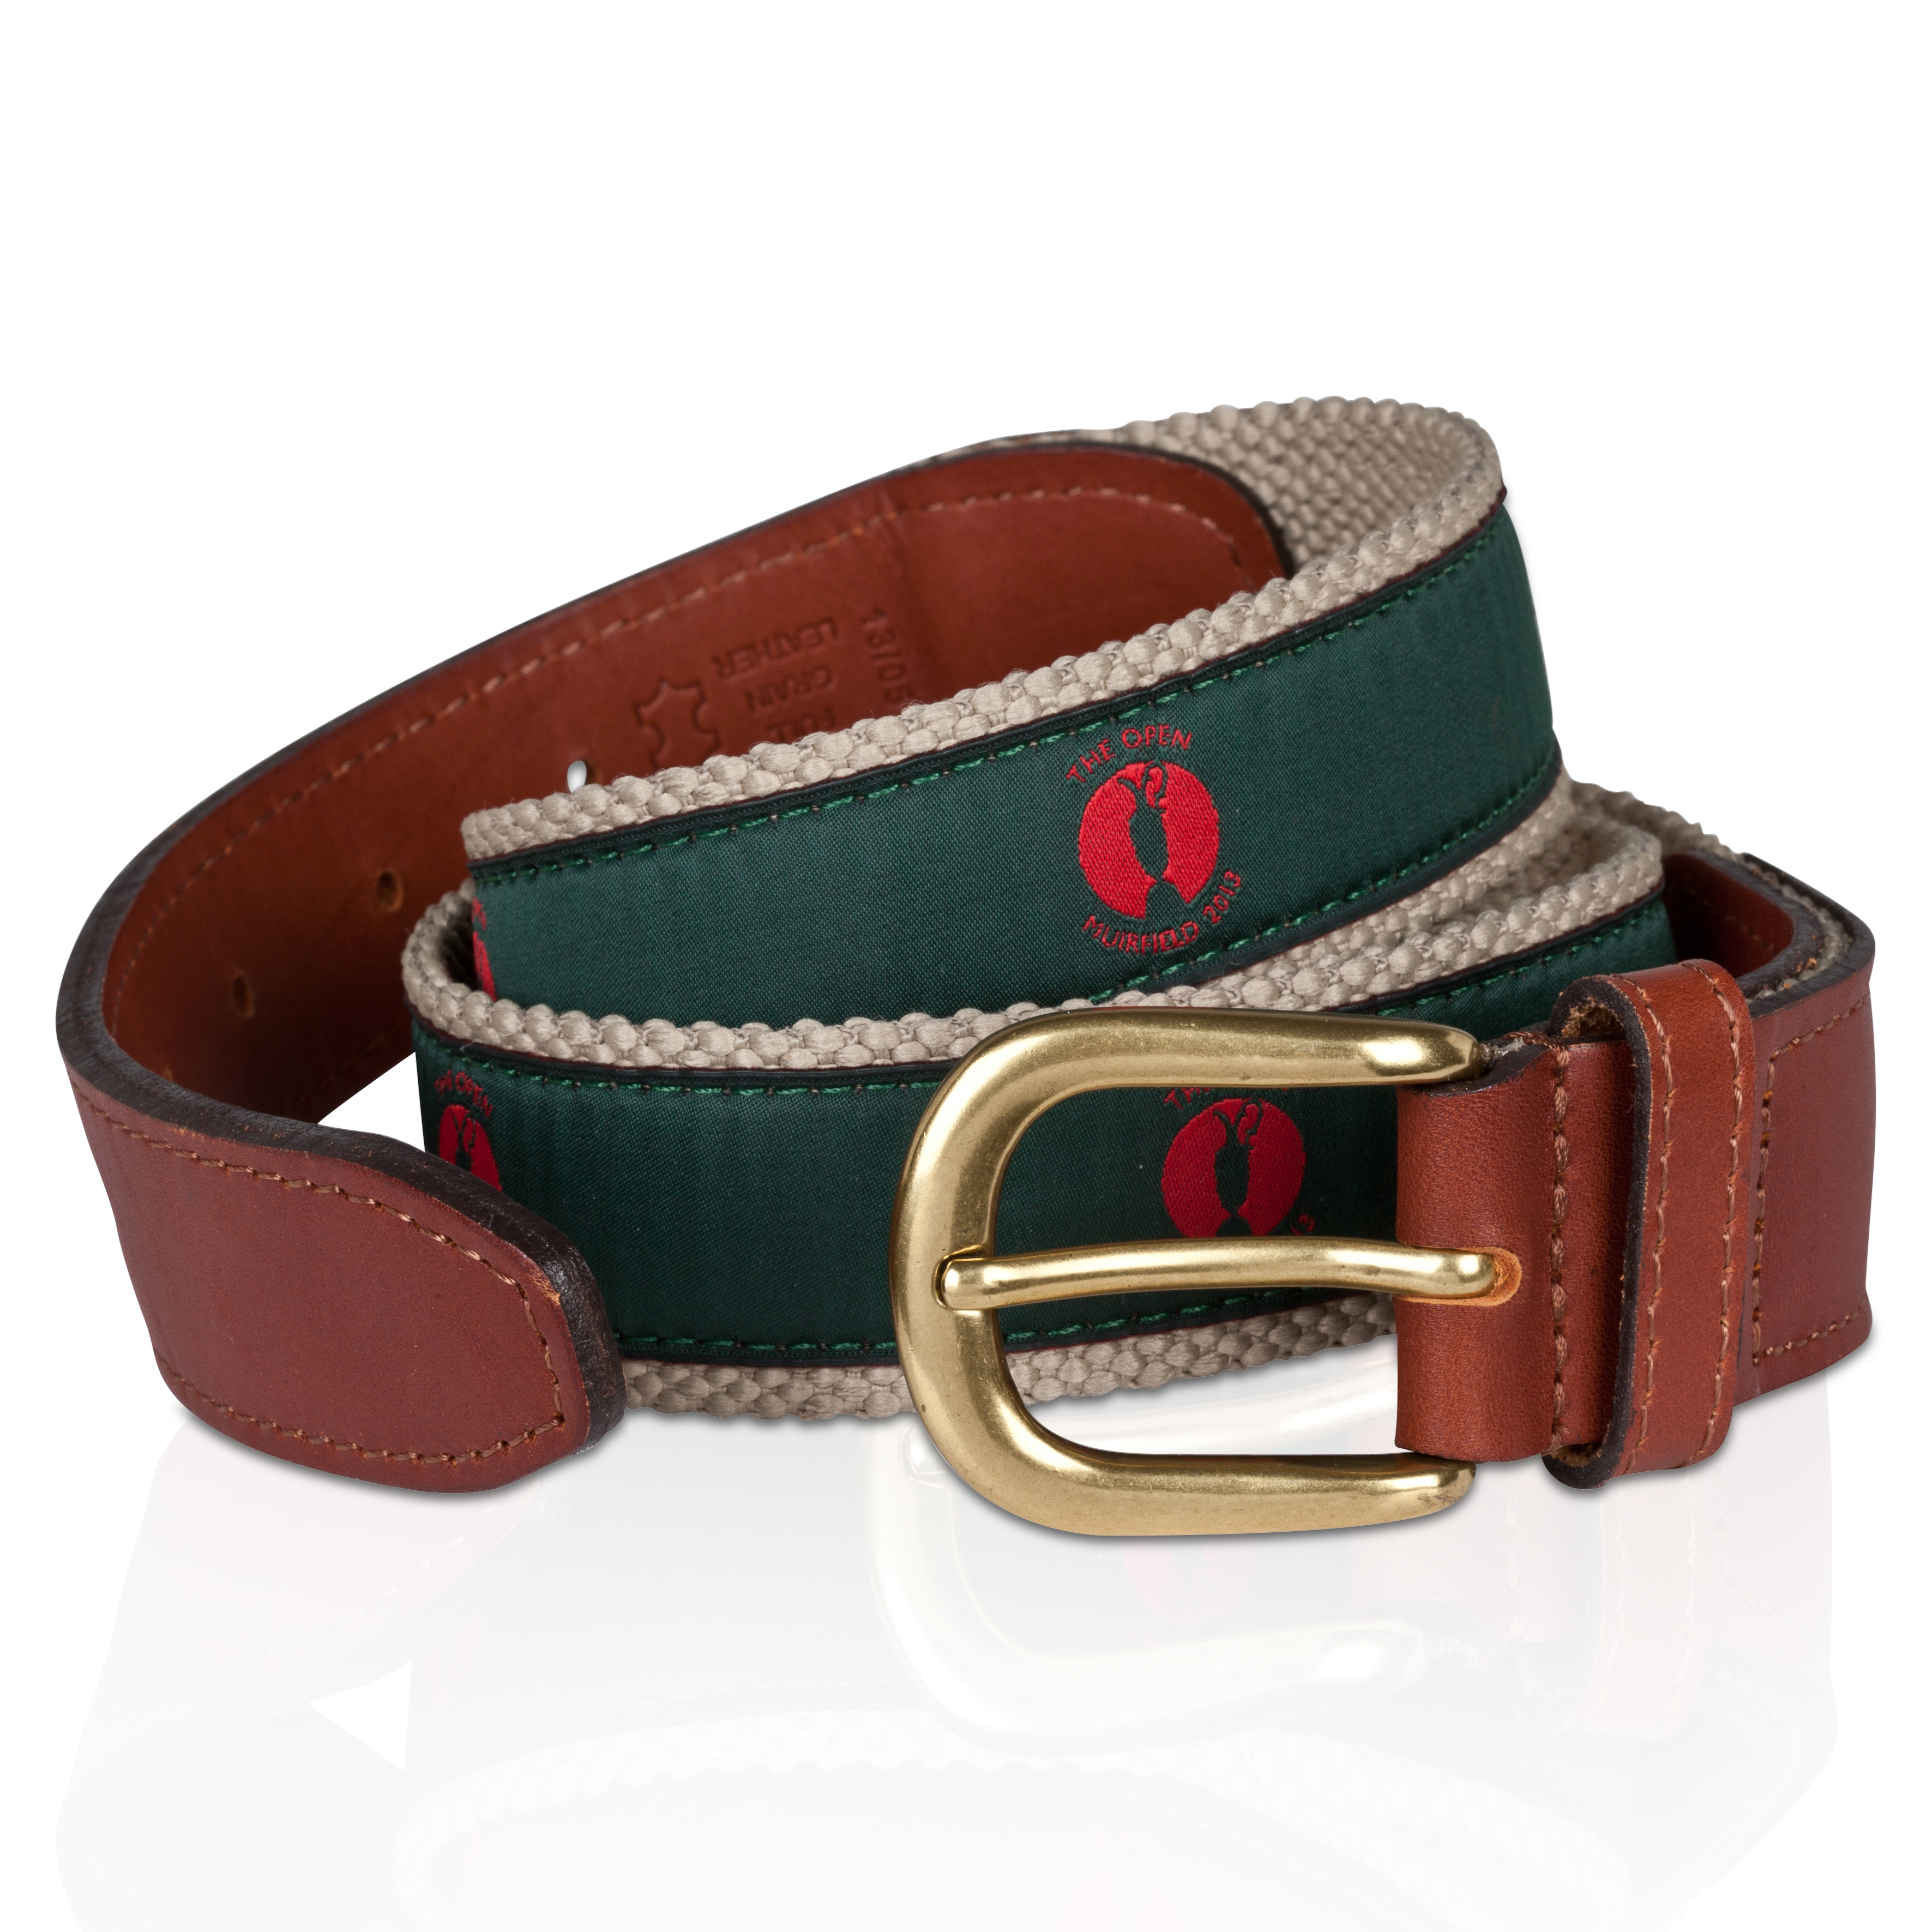 The Open Championship Muirfield Webbing Belt - Red/Green Ribbon Red